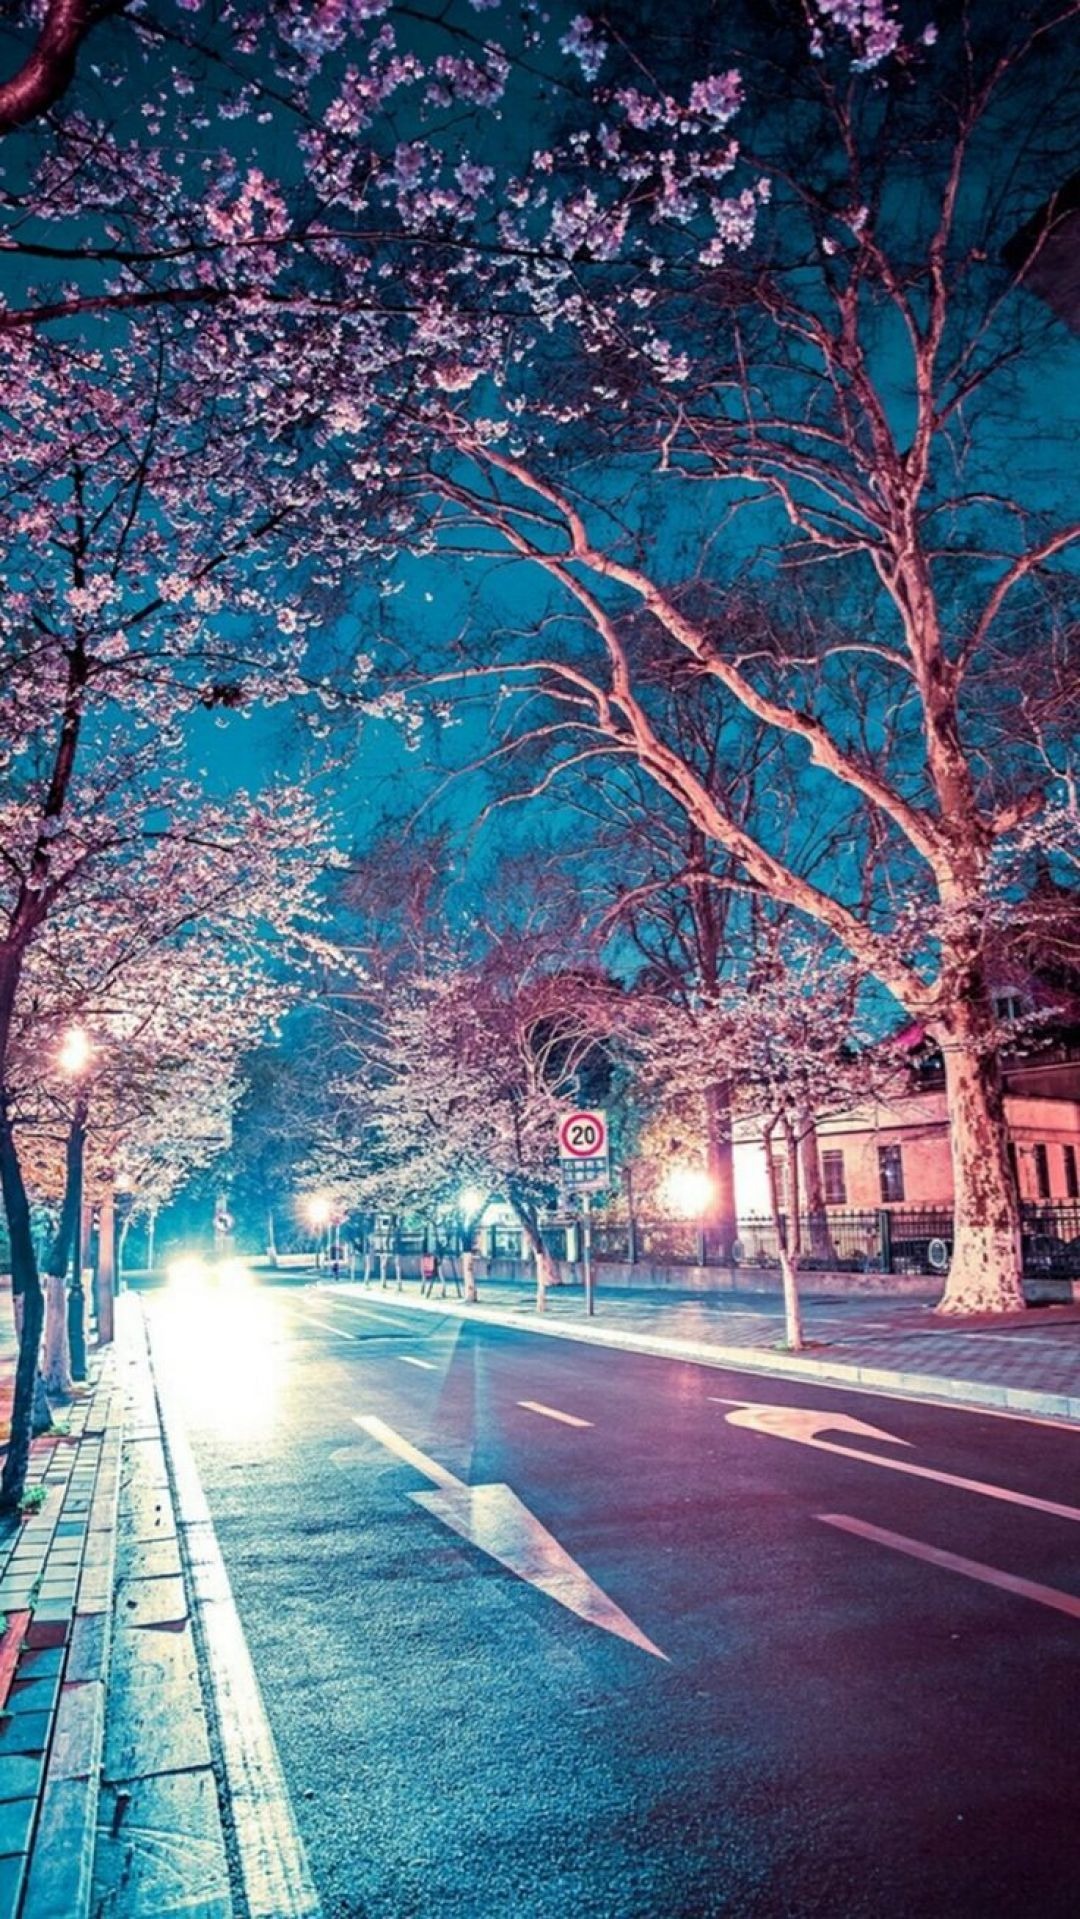 65 Japanese Street Cherry Blossom Night Scenery Iphone 6 Wallpaper Android Iphone Hd Wallpaper Background Download Png Jpg 2021